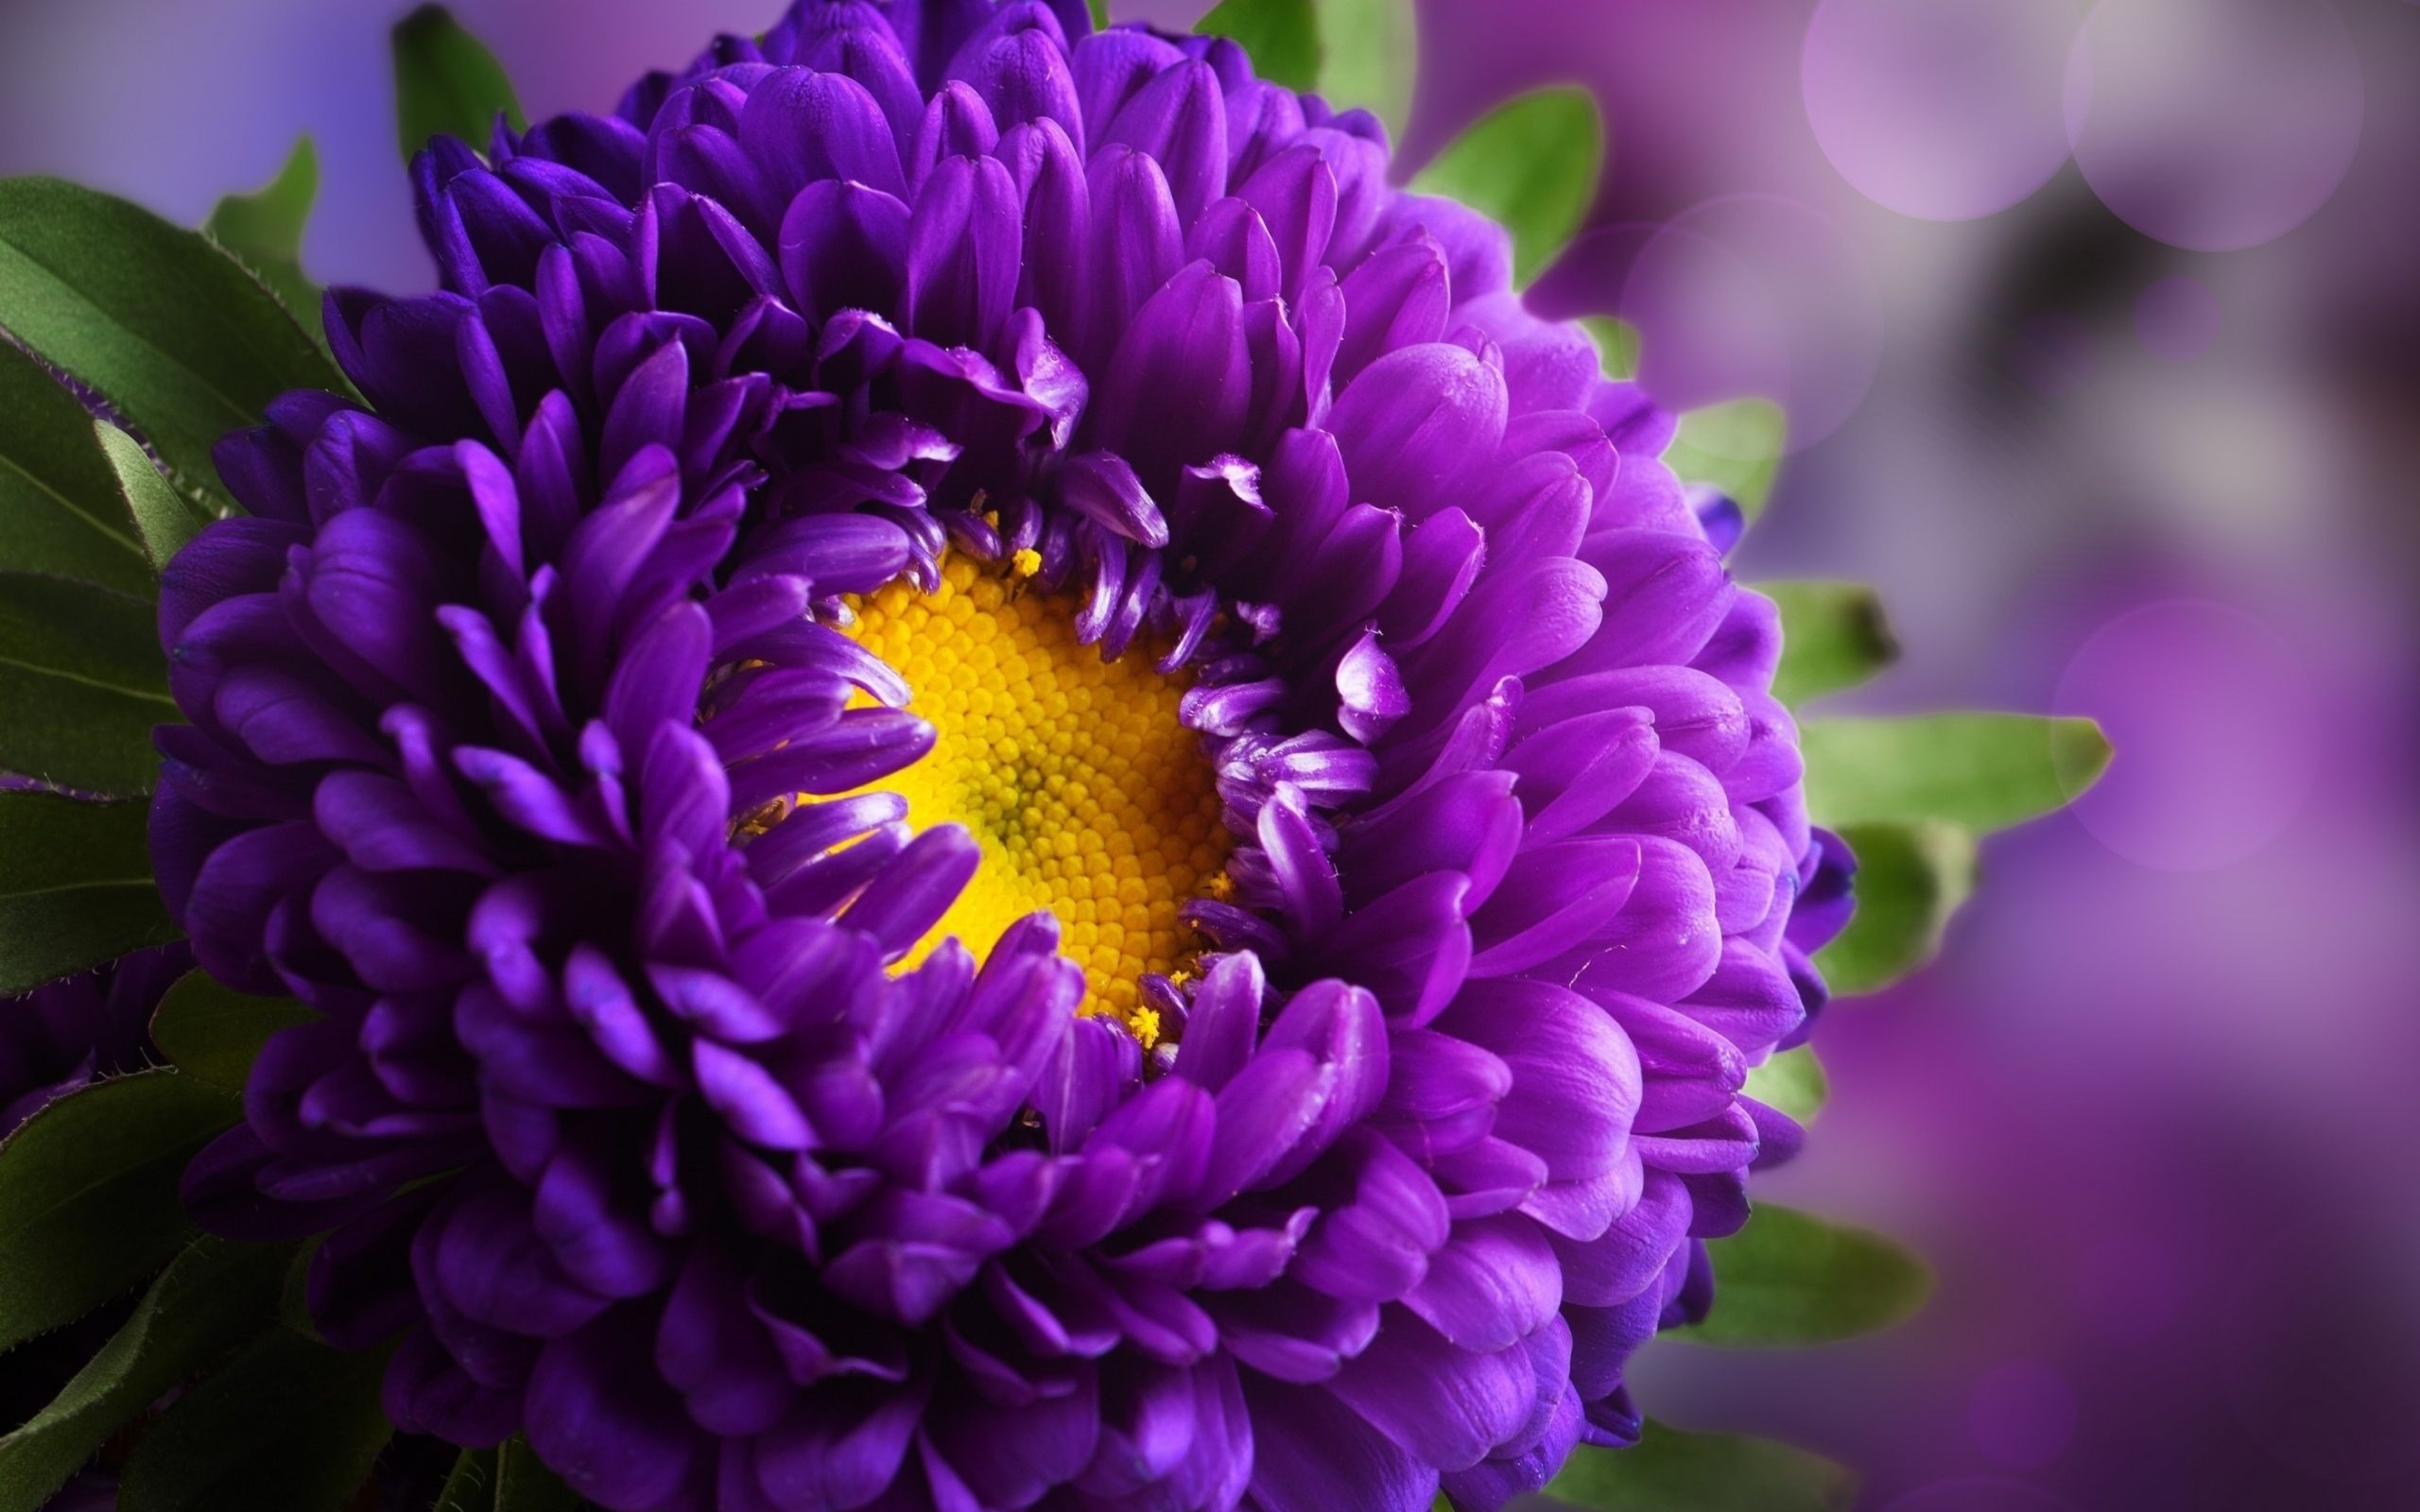 Purple Flower Hd Wallpapers